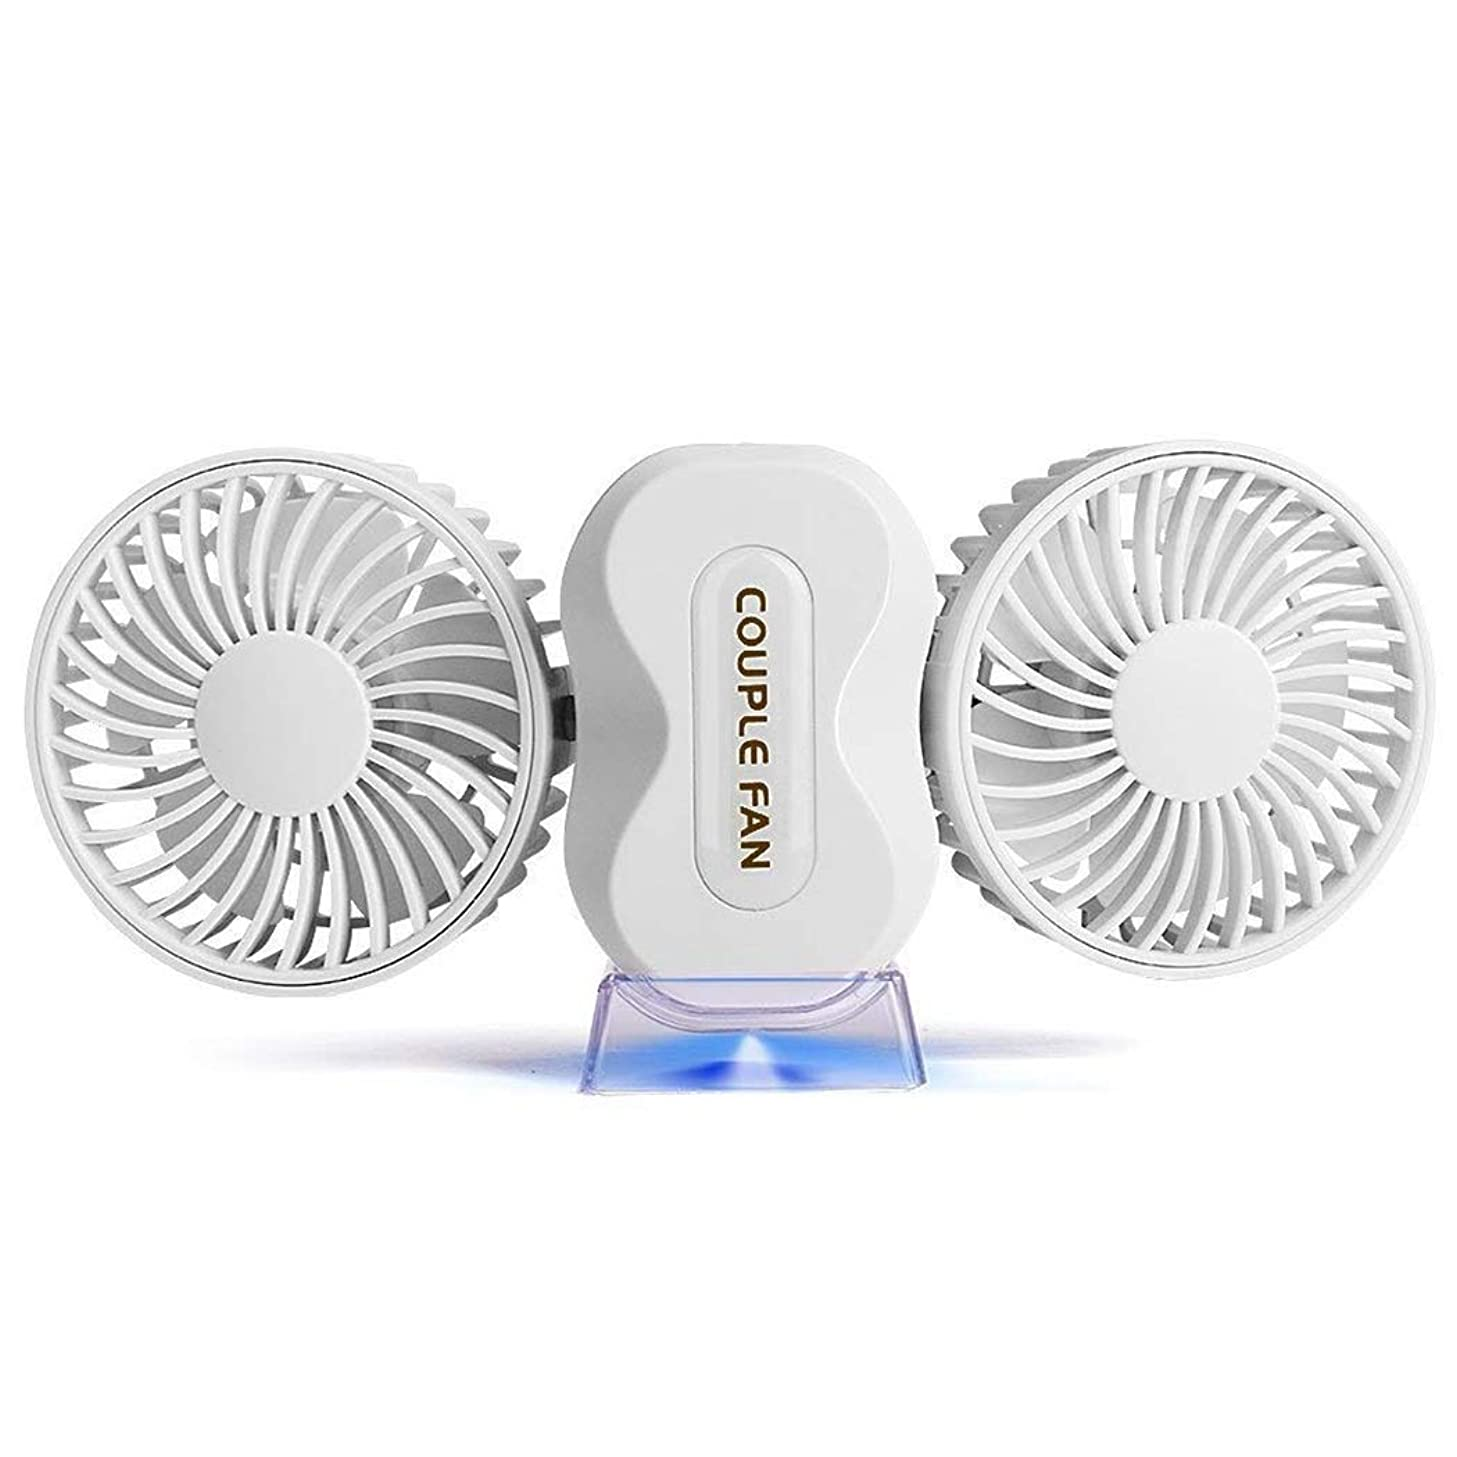 MUTANG Portable Mini USB Fan Table Desk Fan Dual Head Car Fan with 3 Speed, Quiet Powerful Cooling Fan for Home Office Camping Travel Car